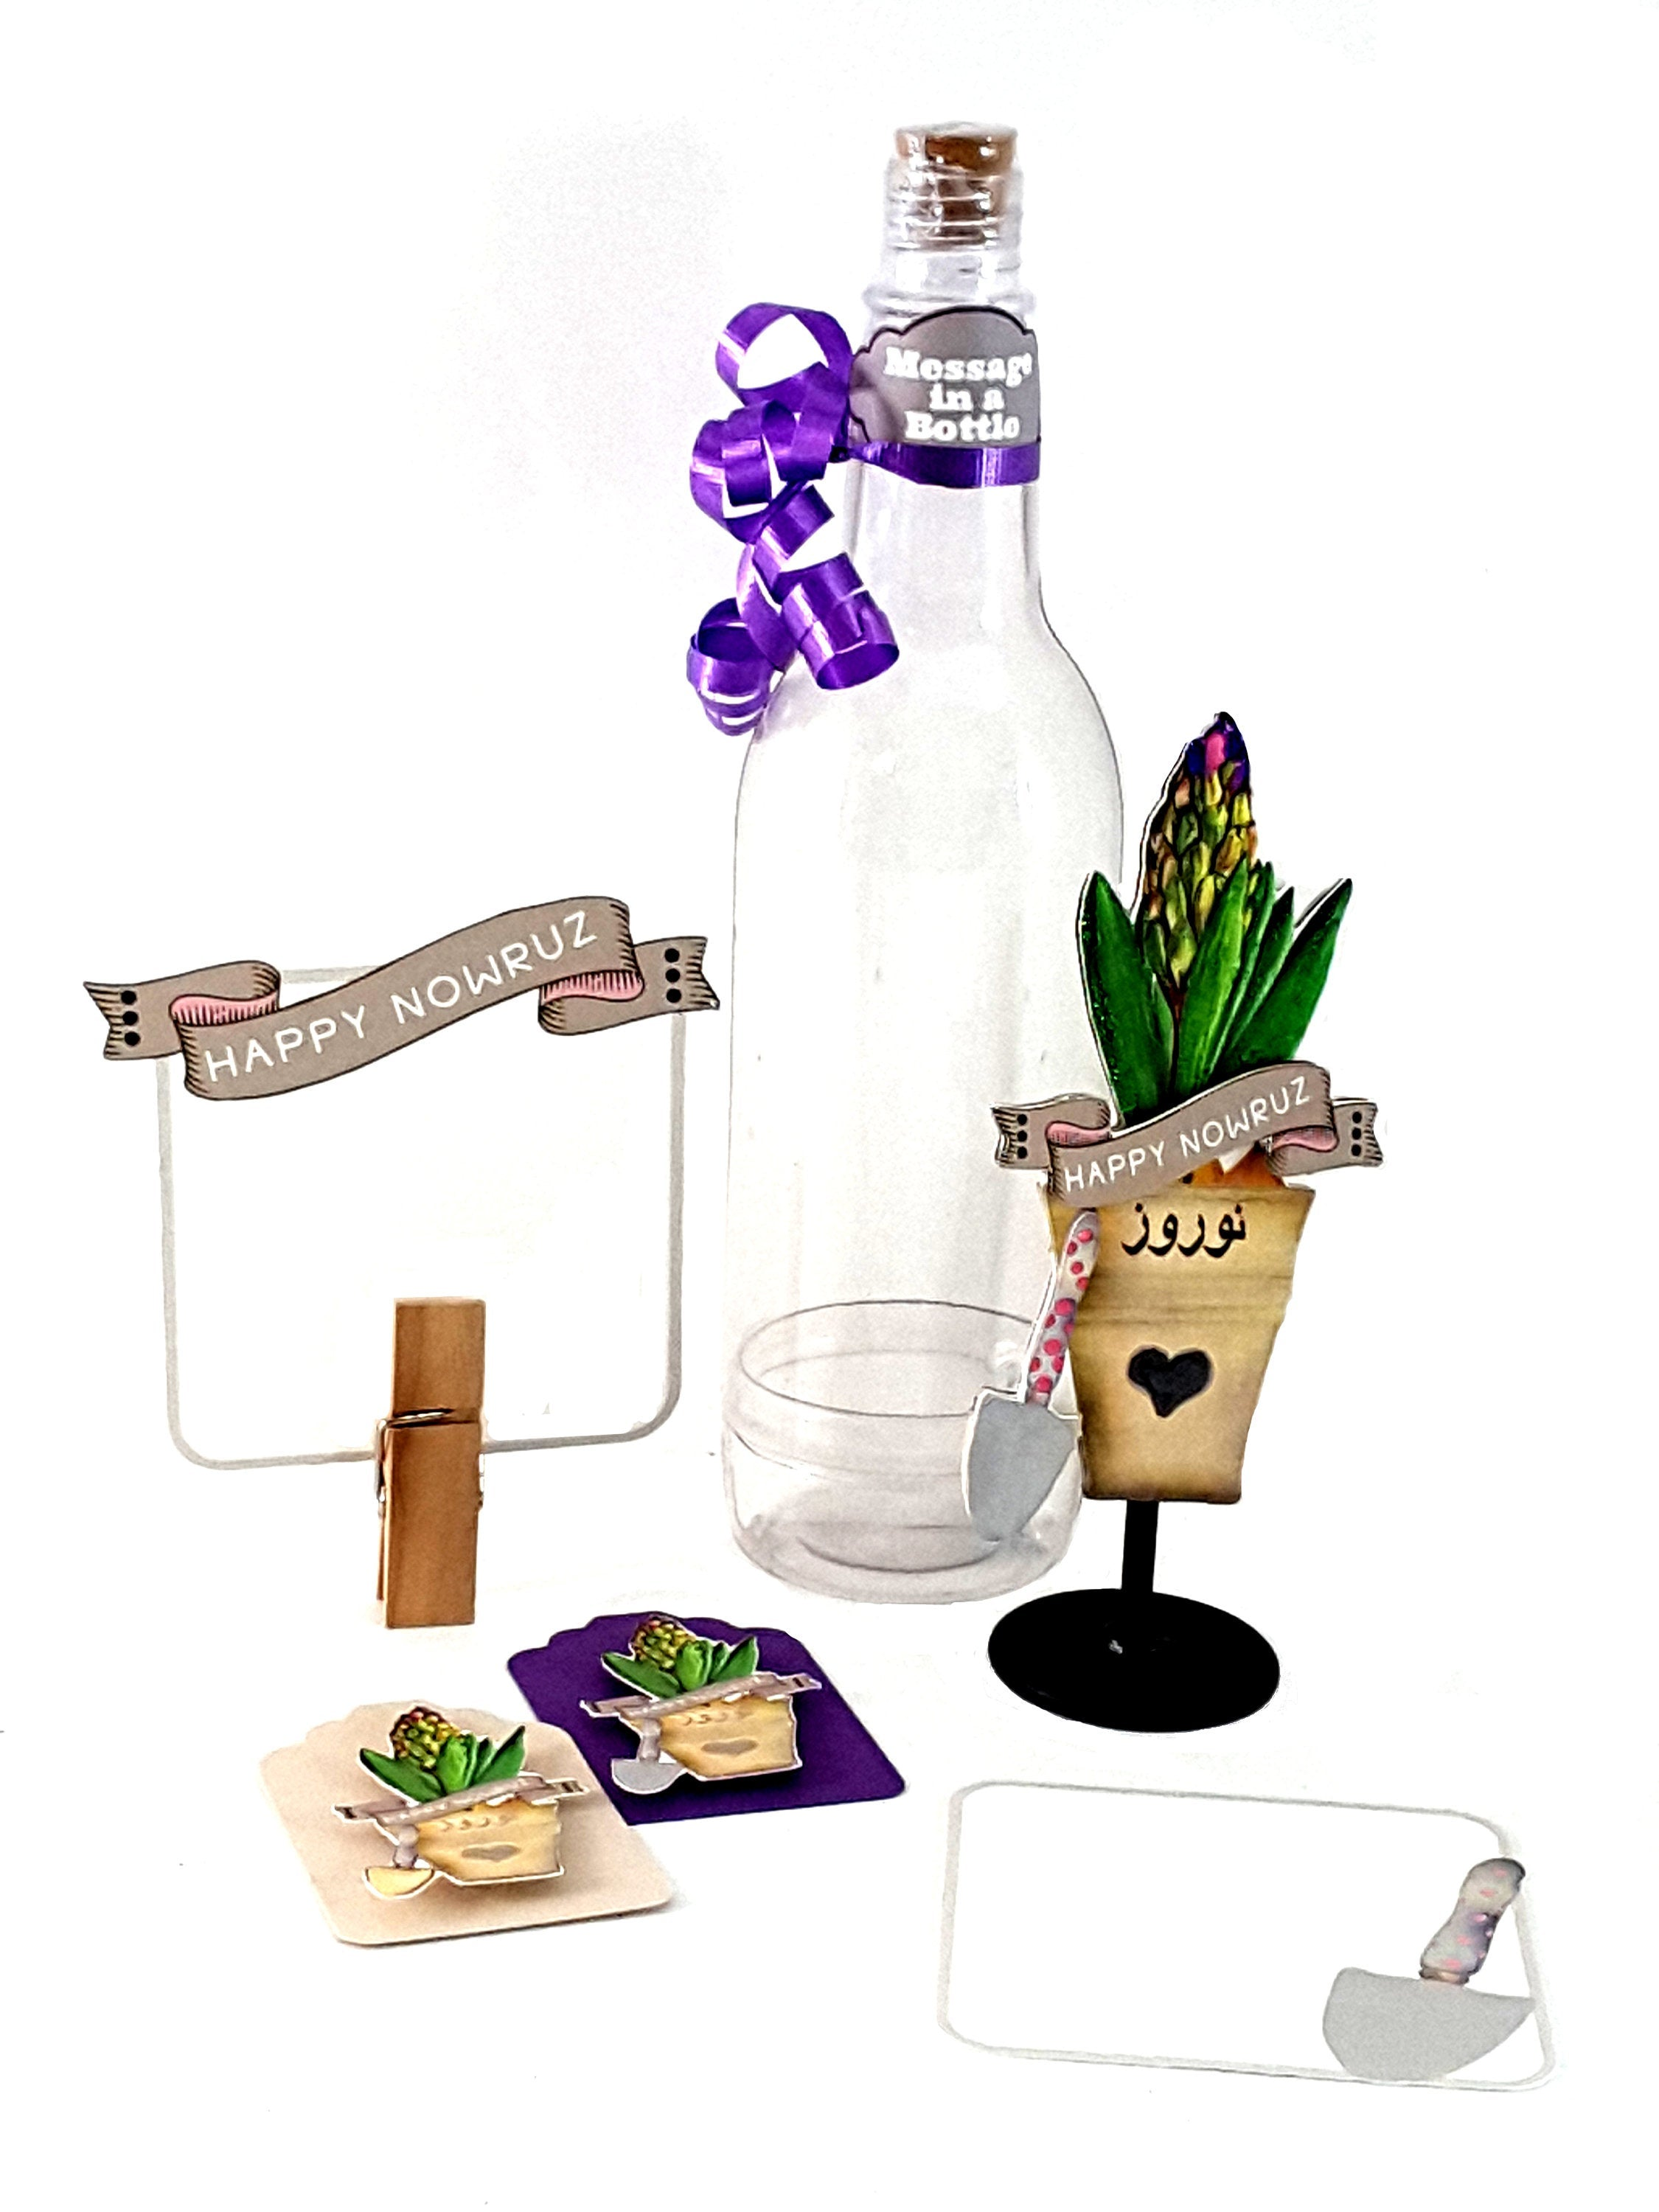 Persian New Year Nowruz Greeting Card Message in a Bottle with Potted Hyacinth Plant, Card with Haftsin Table Items included - TheLastWordBish.com